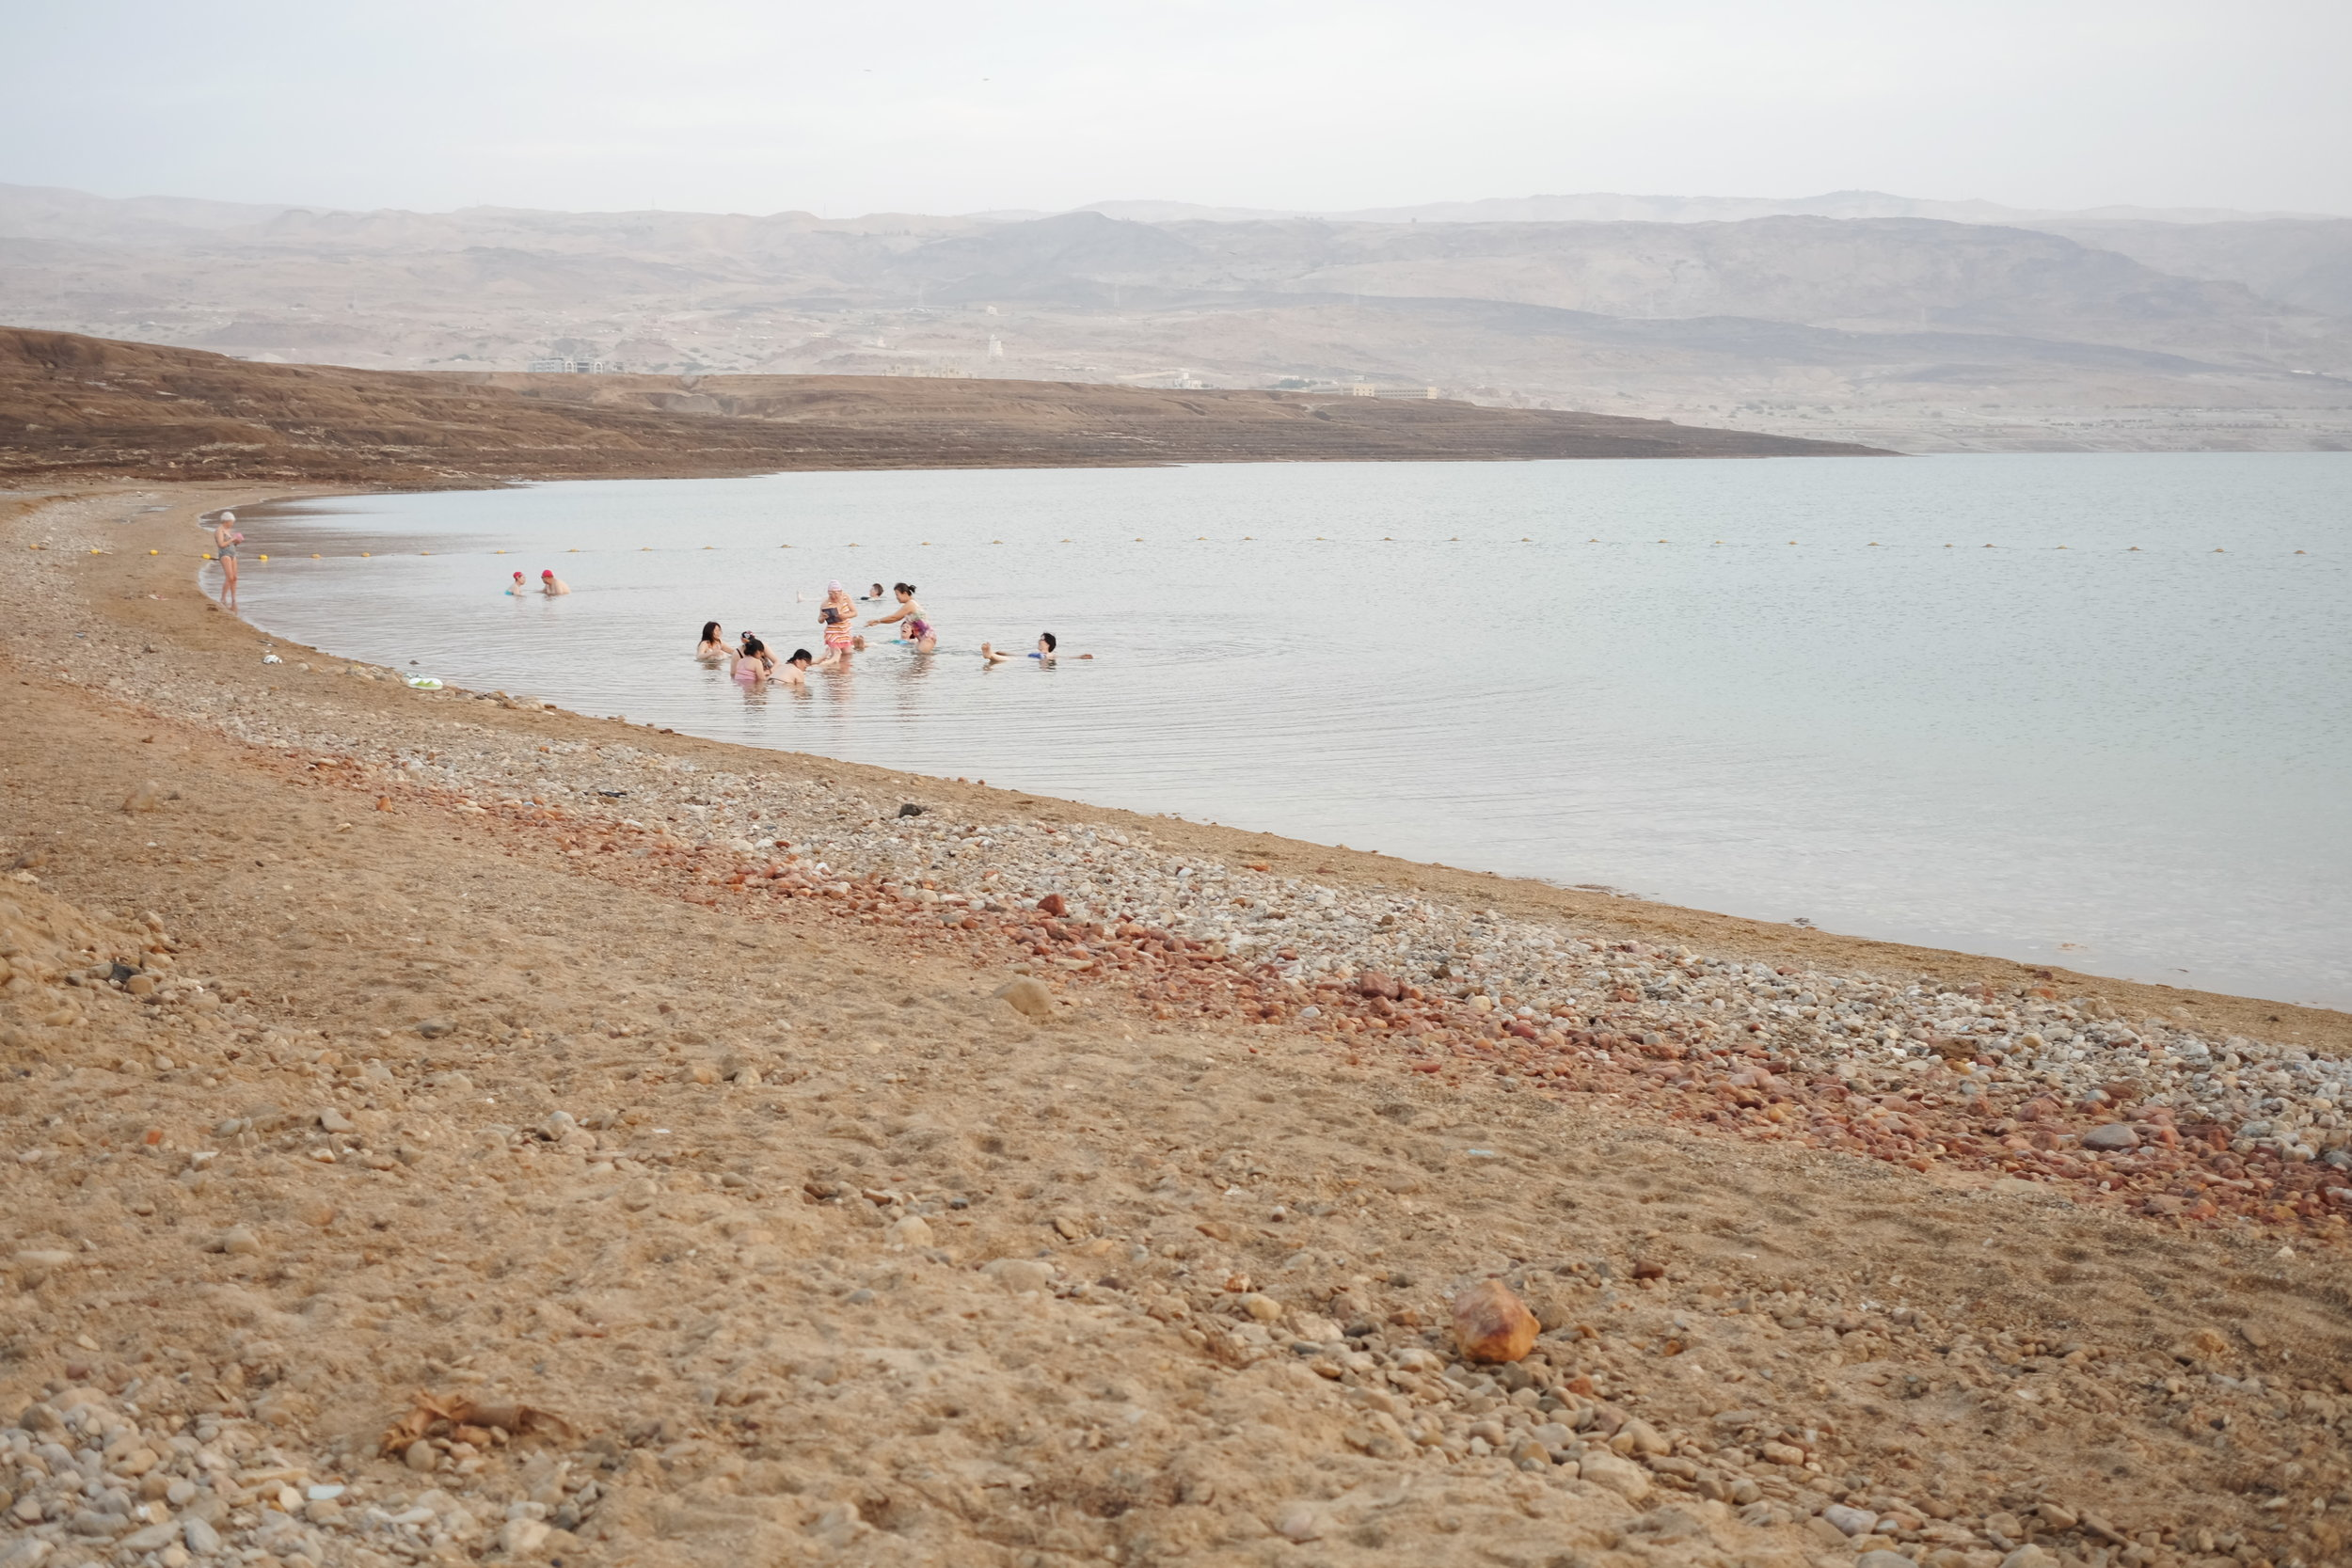 Chinese tourists floating in the Dead Sea